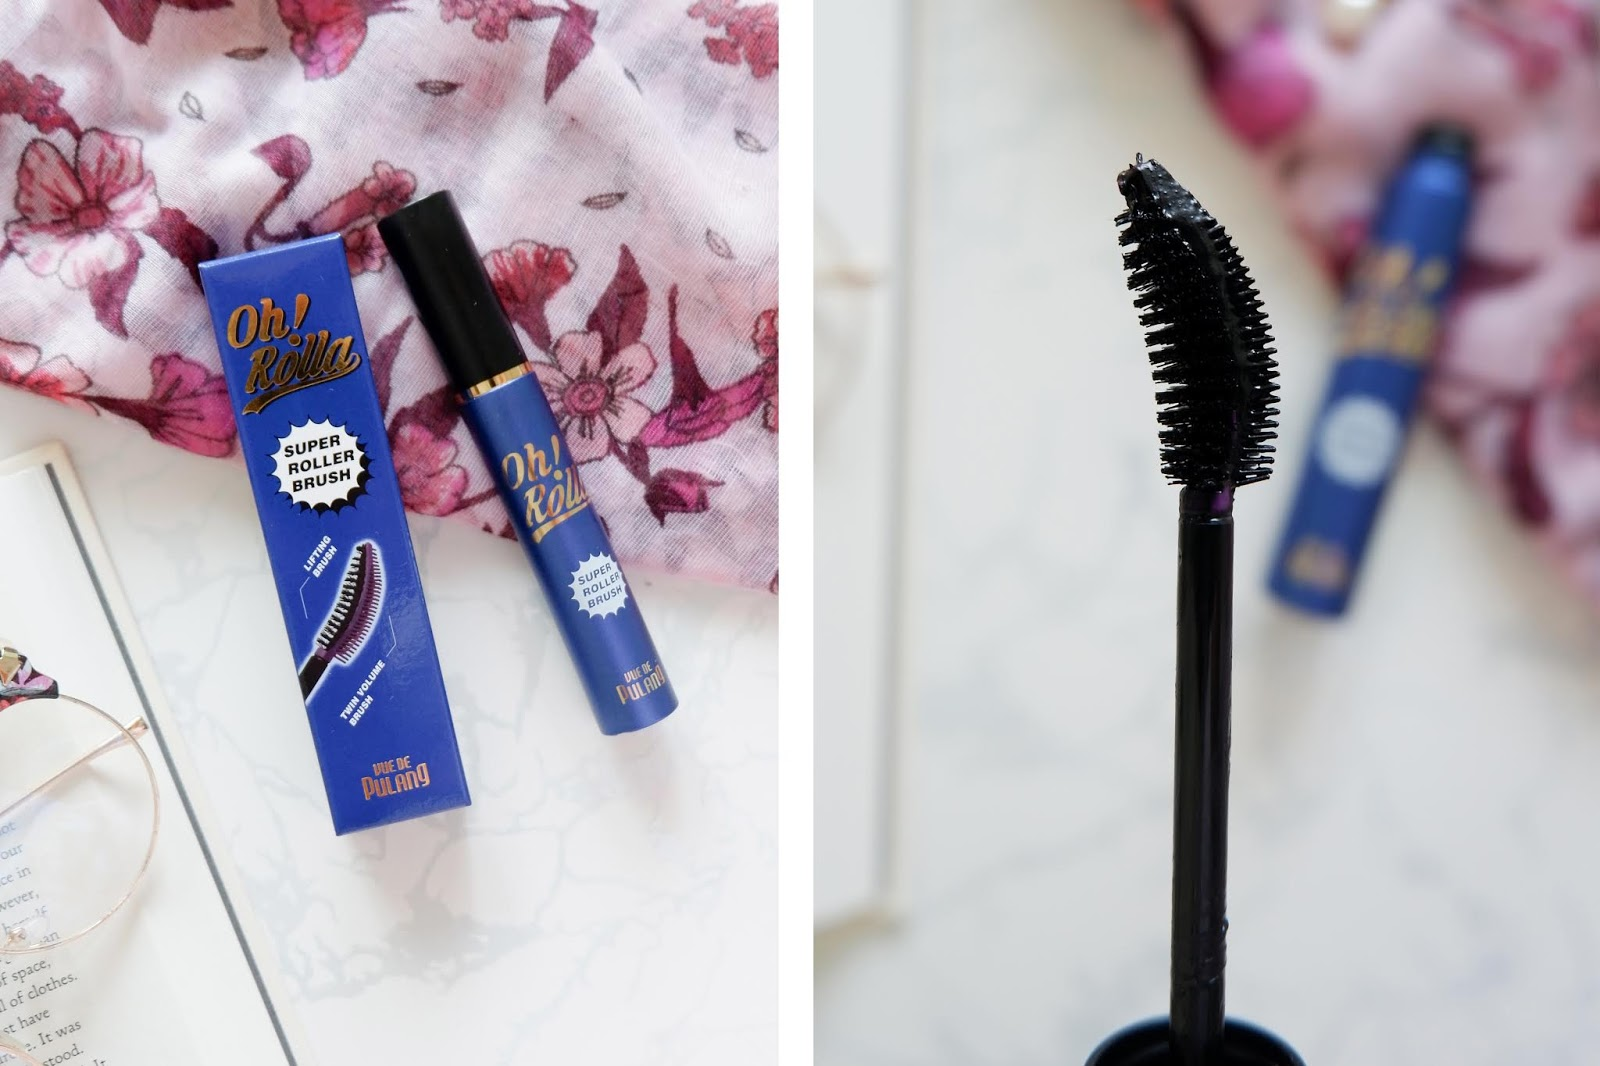 VUE DE PULANG: SUPER OH ROLLA MASCARA BRUSH REVIEW